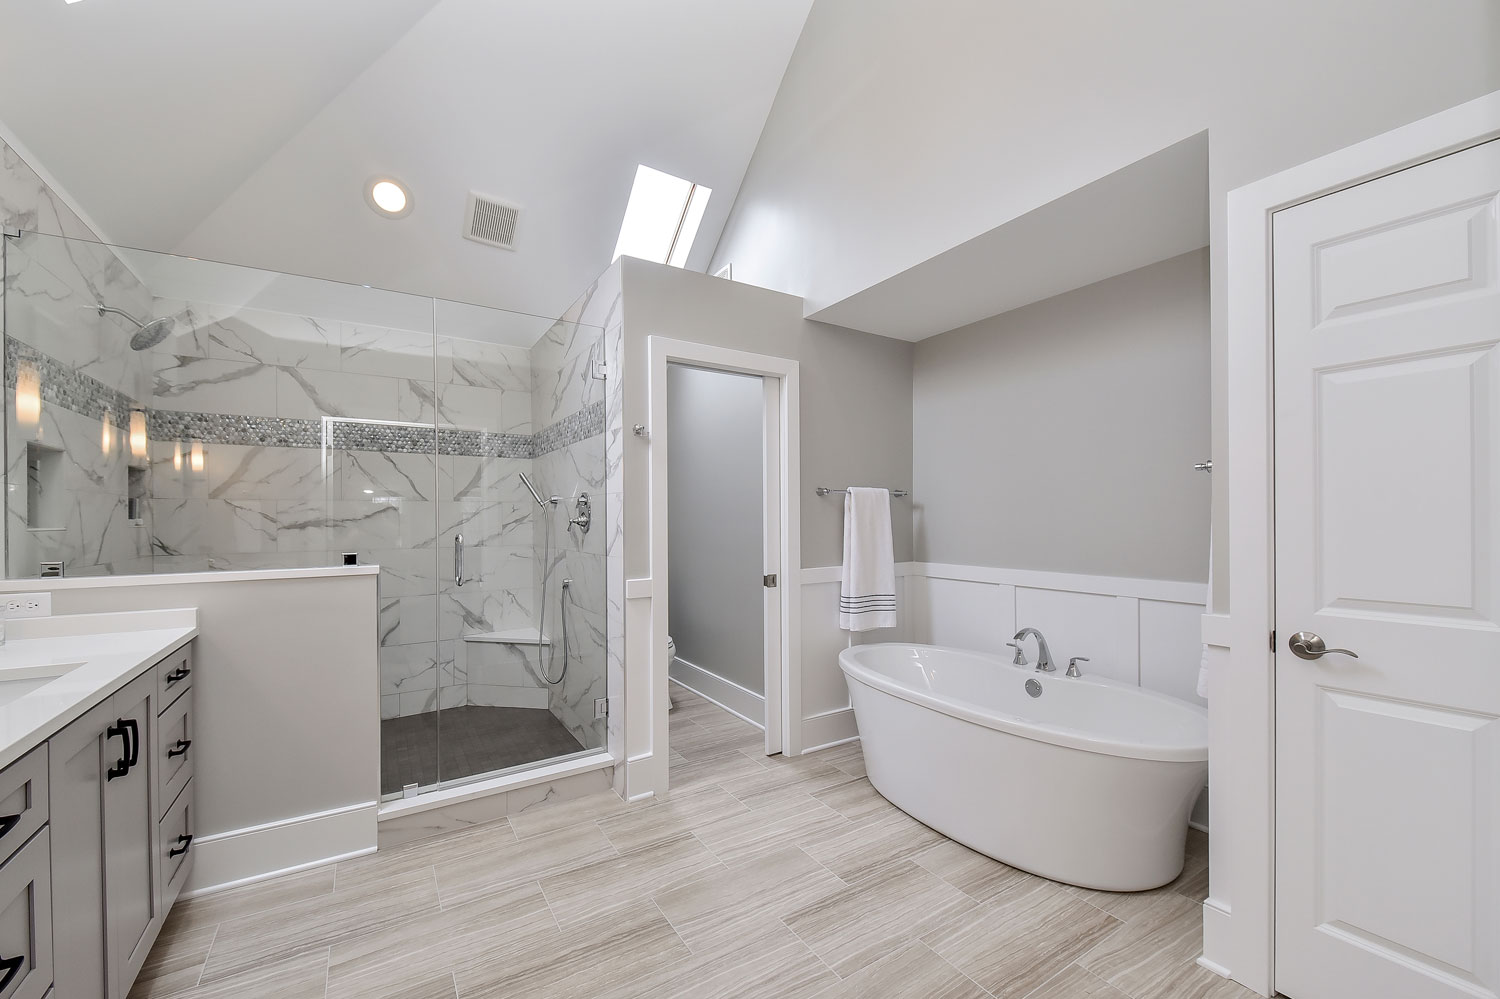 Sarah Ray S Master Bathroom Remodel Pictures Home Remodeling Contractors Sebring Design Build